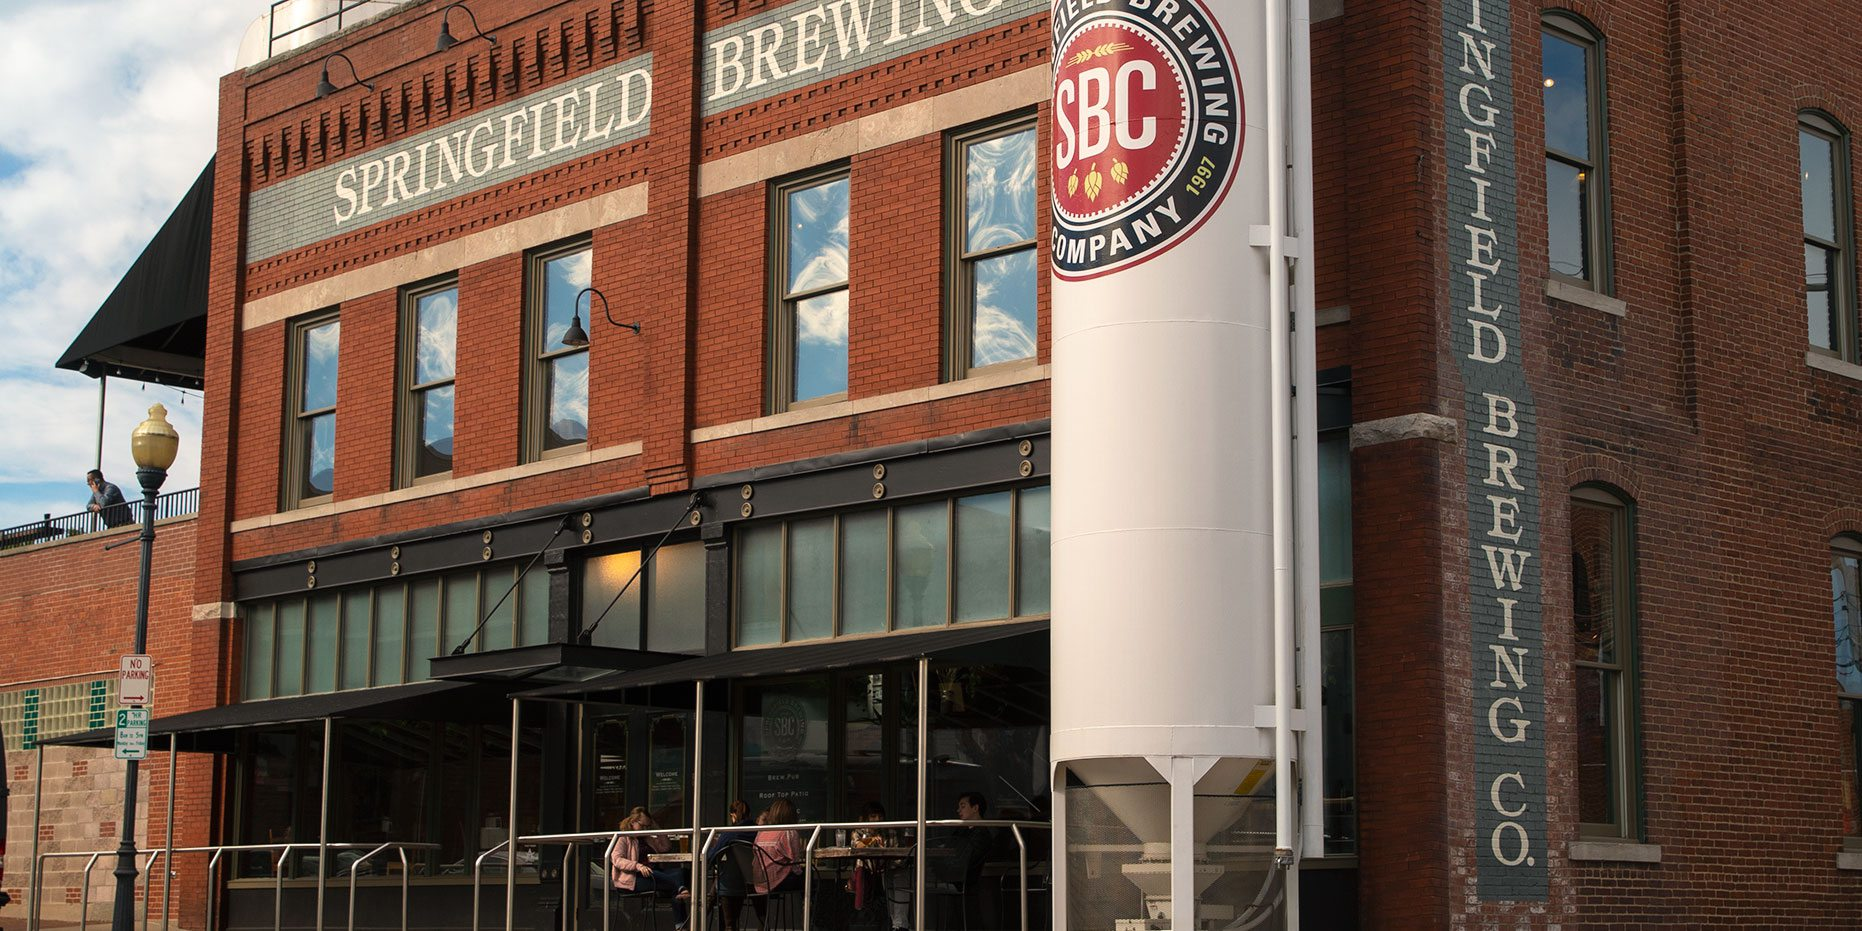 Springfield Brew Co. exterior with patio seating